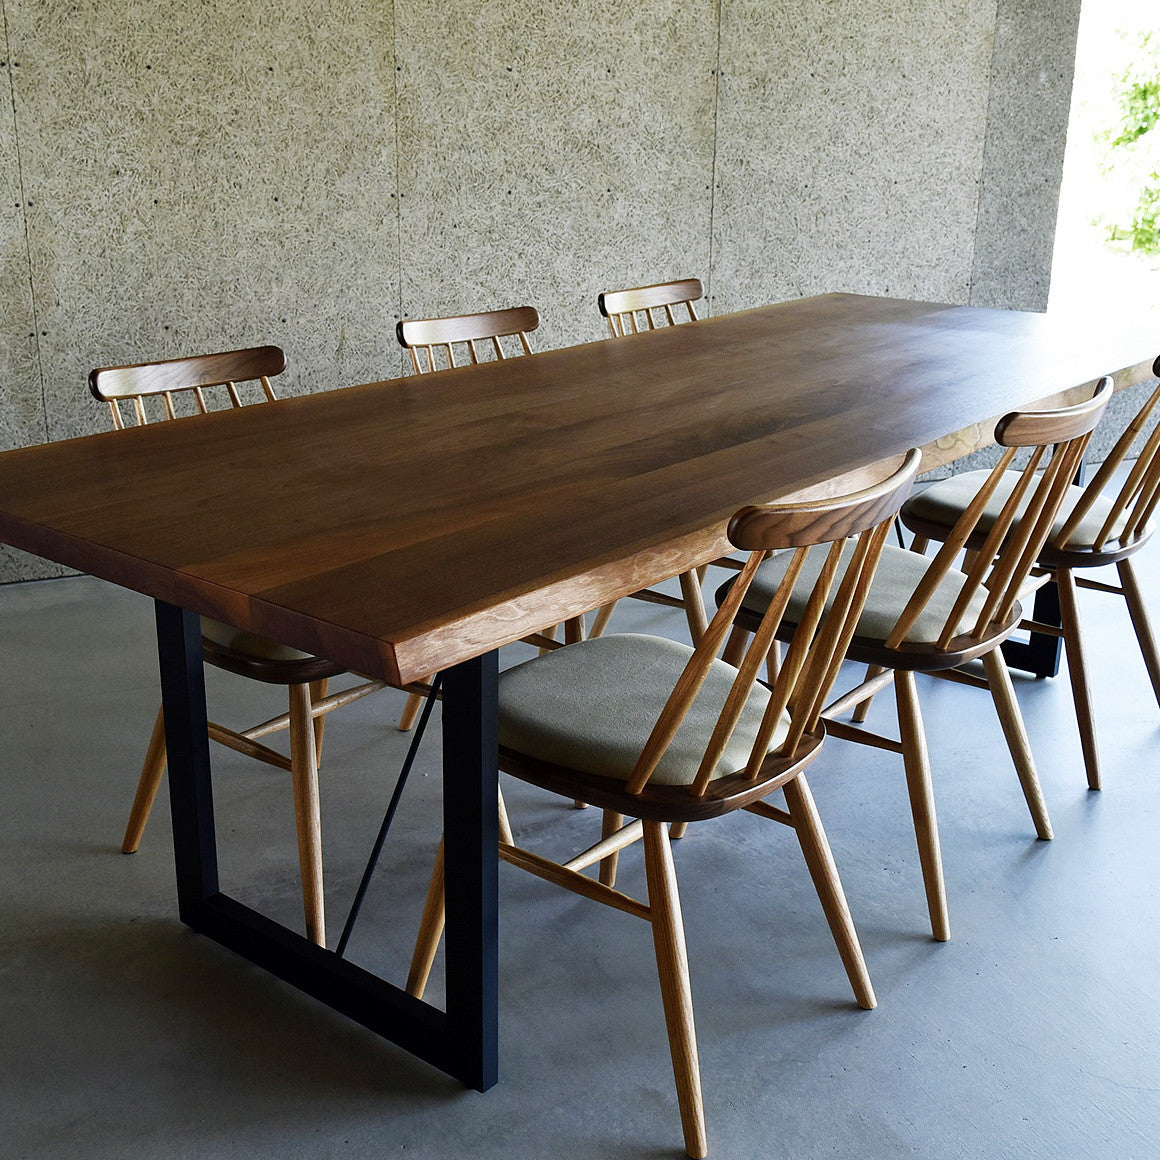 LAND DT029 table - Dining Table - Nagano Interior